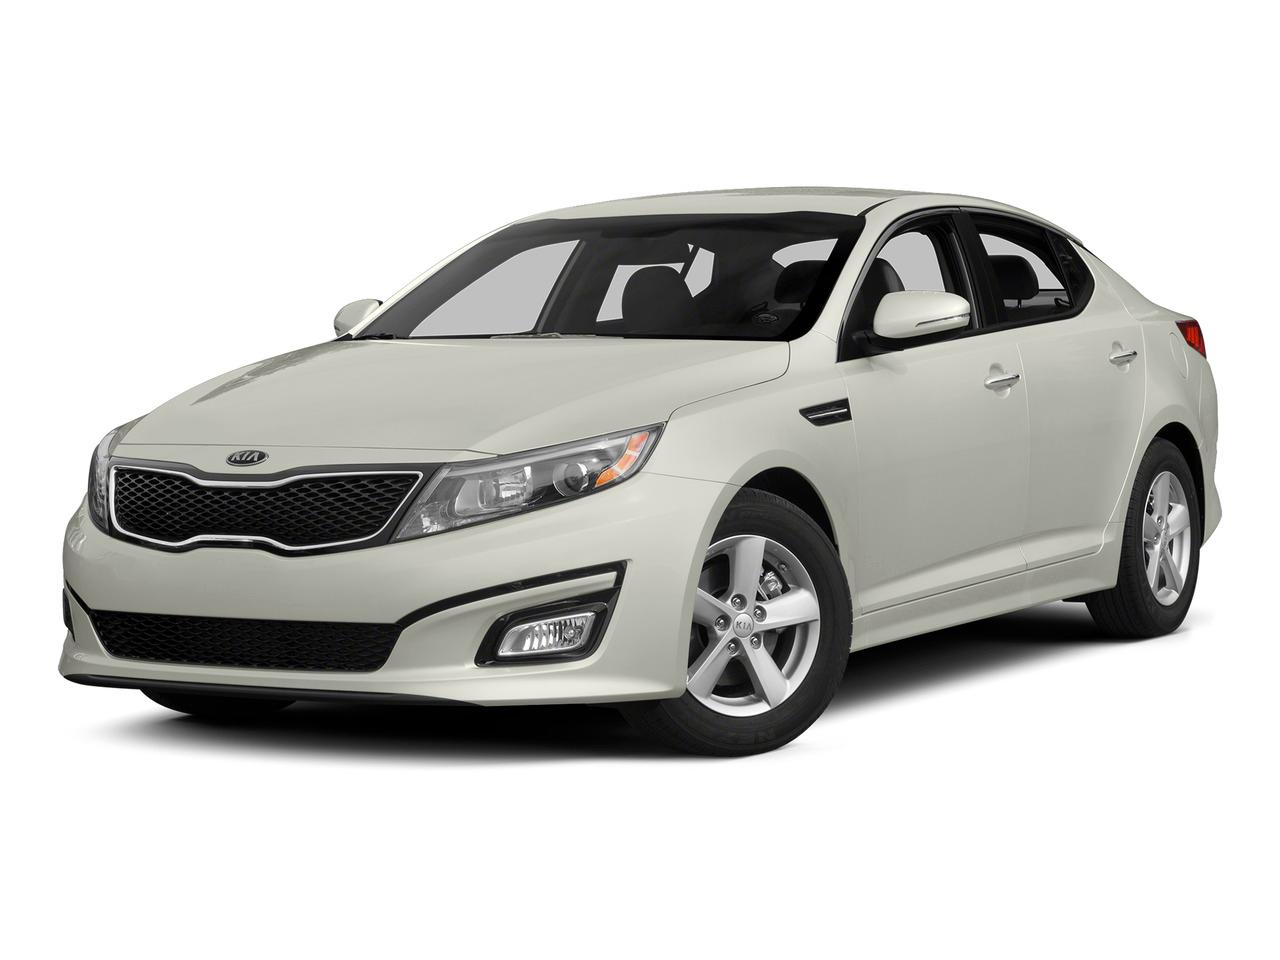 2015 Kia Optima Vehicle Photo in Lake Katrine, NY 12449